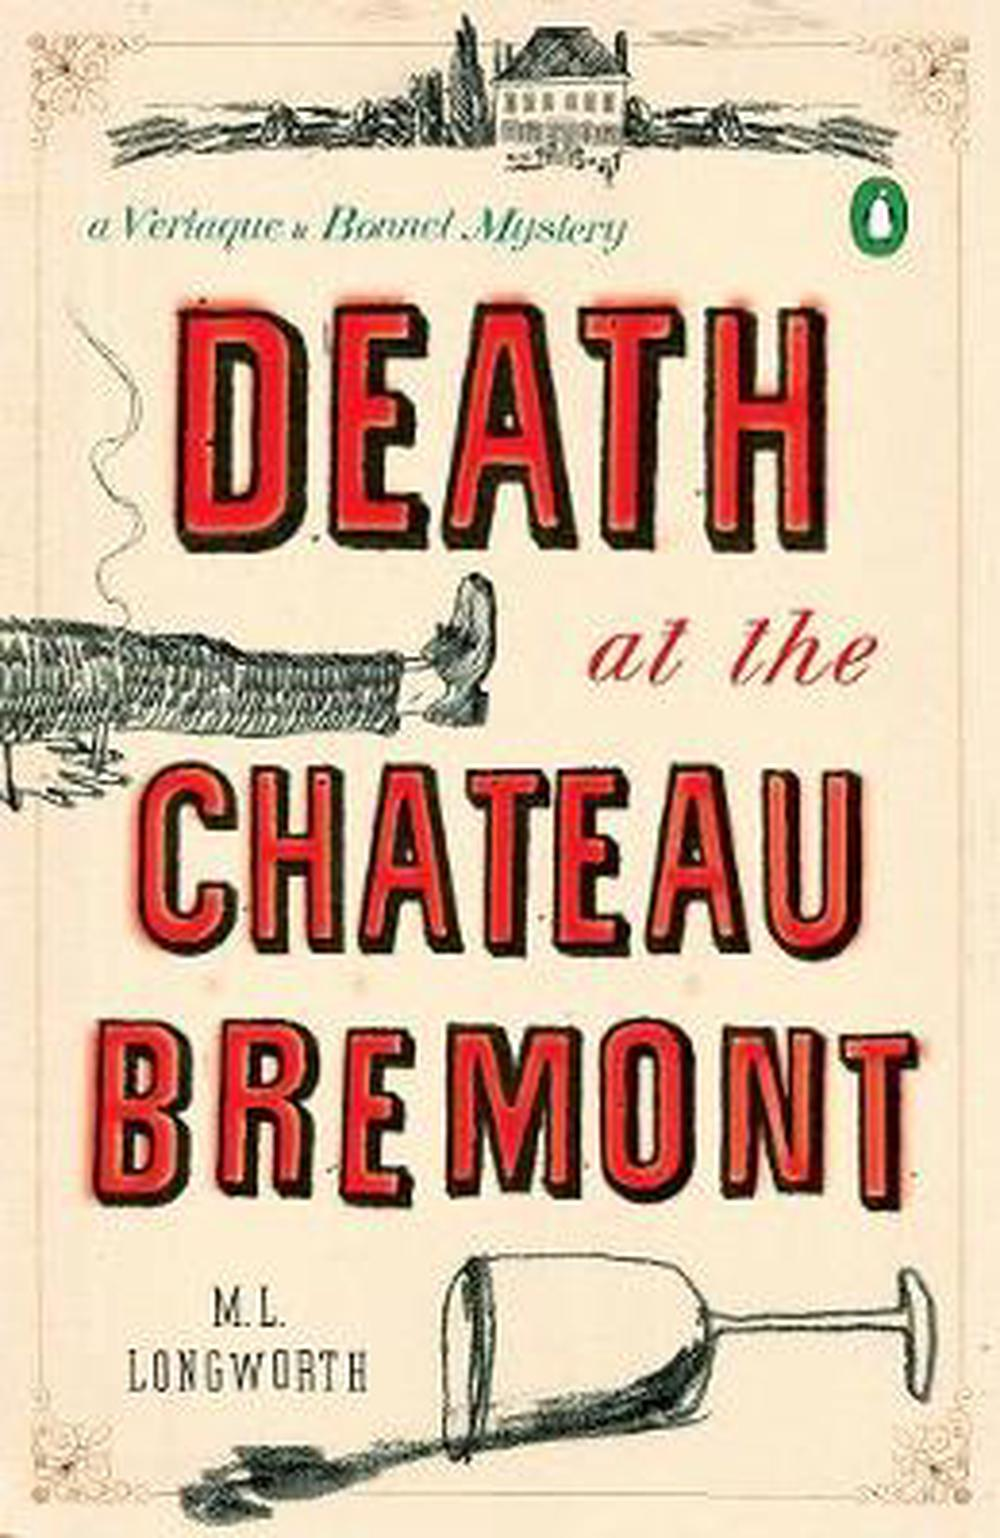 Death at the Chateau Bremont: A Verlaque and Bonnet Mystery